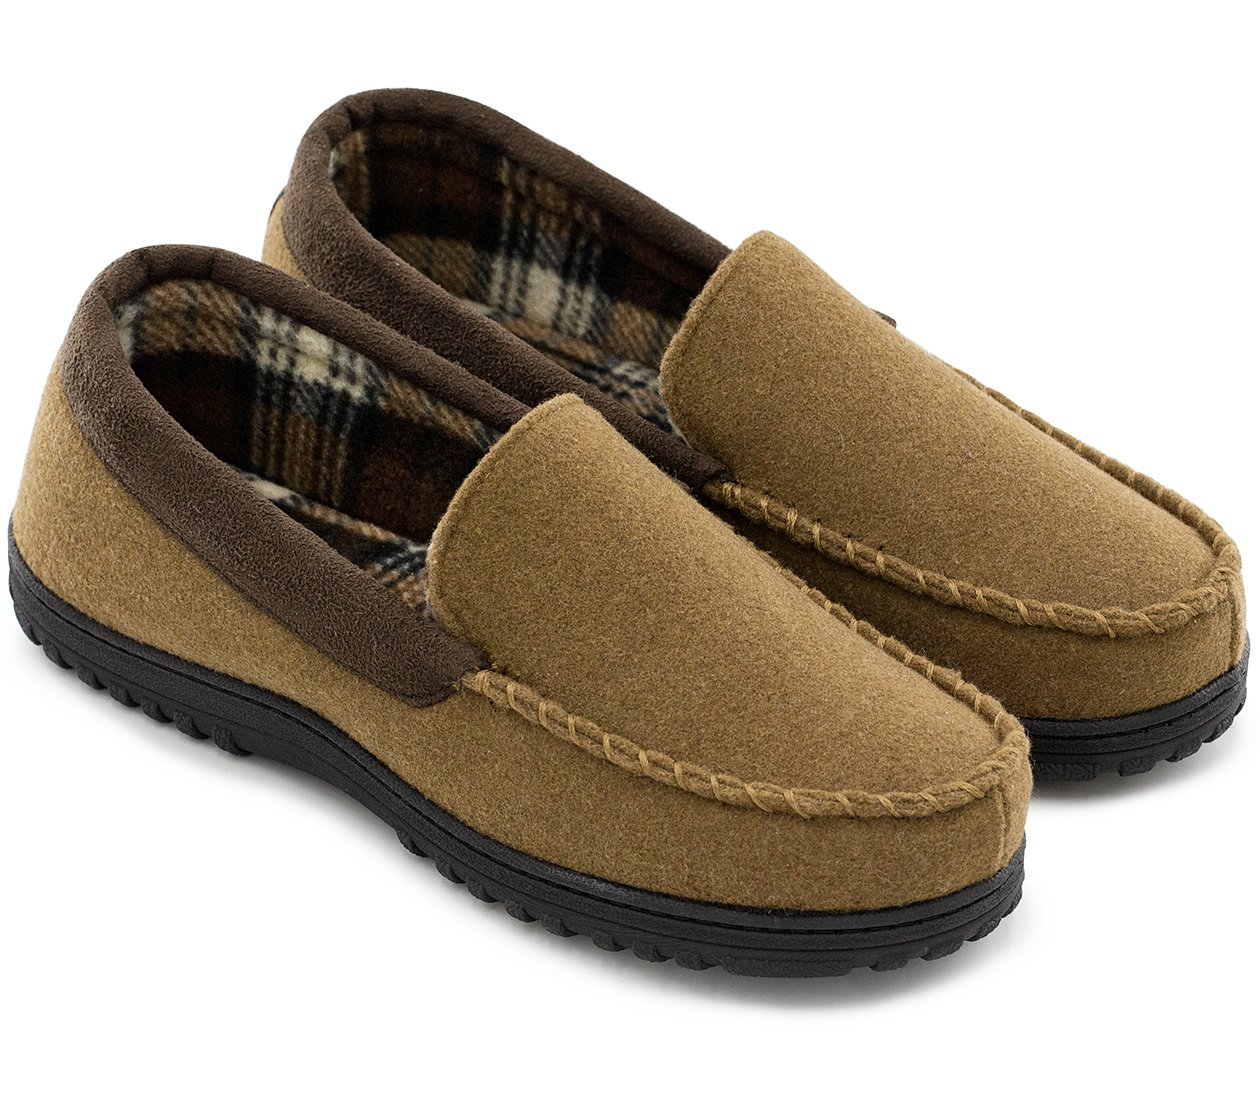 HomeTop Men's Indoor Outdoor Wool Micro Suede Moccasin Slippers House Shoes (44 (US Men's 11), Camel) by HomeTop